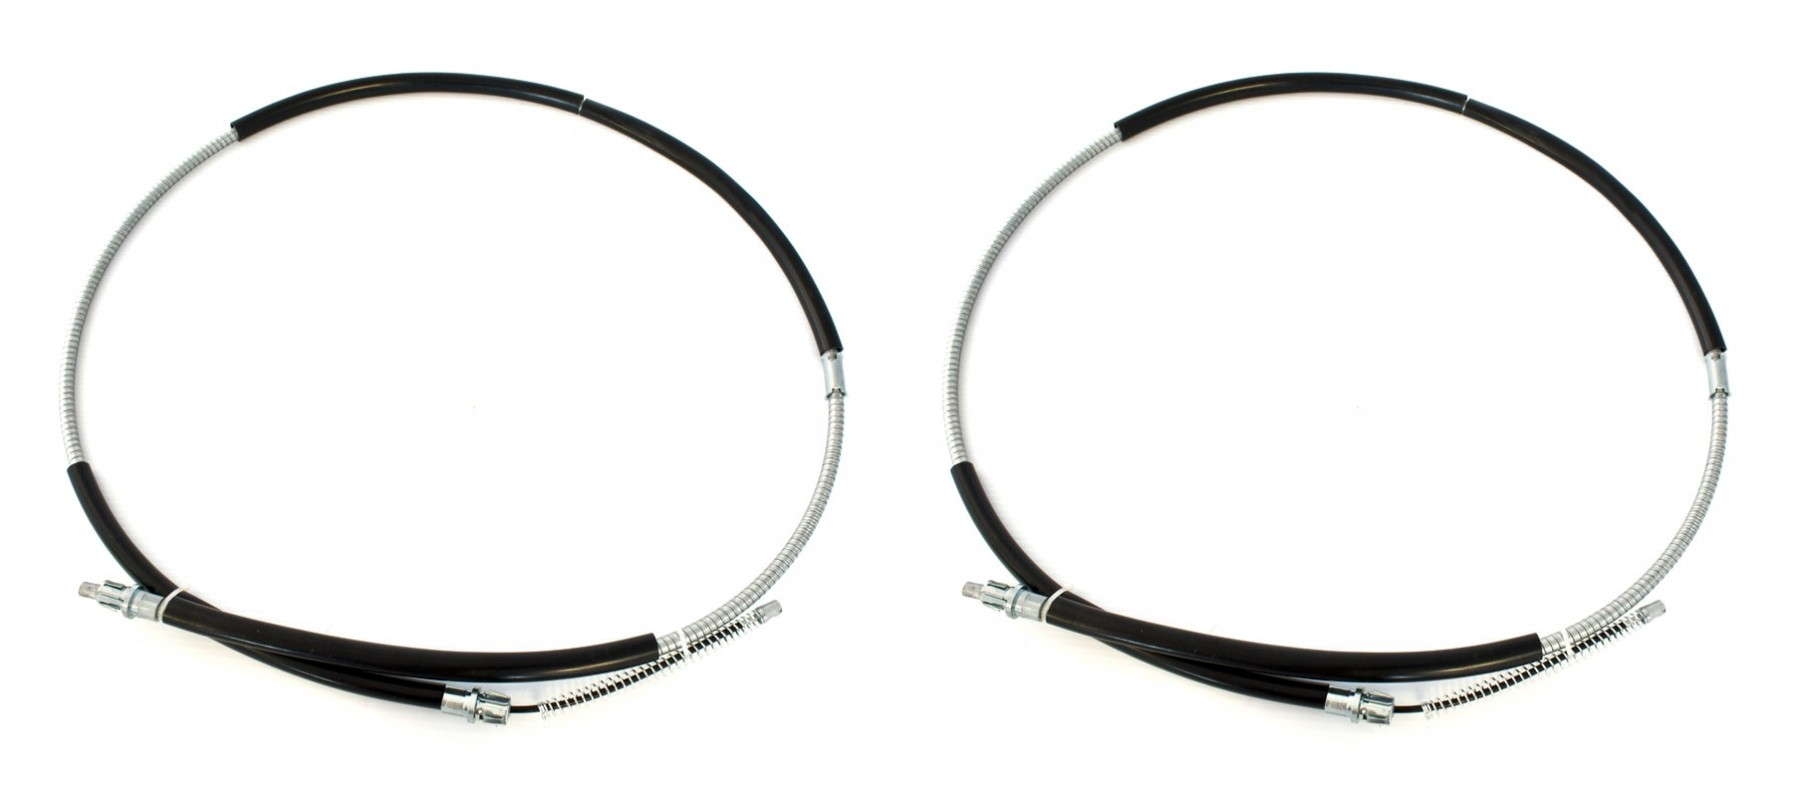 Ford Mustang 68 Parking E Brake Cables For Drum